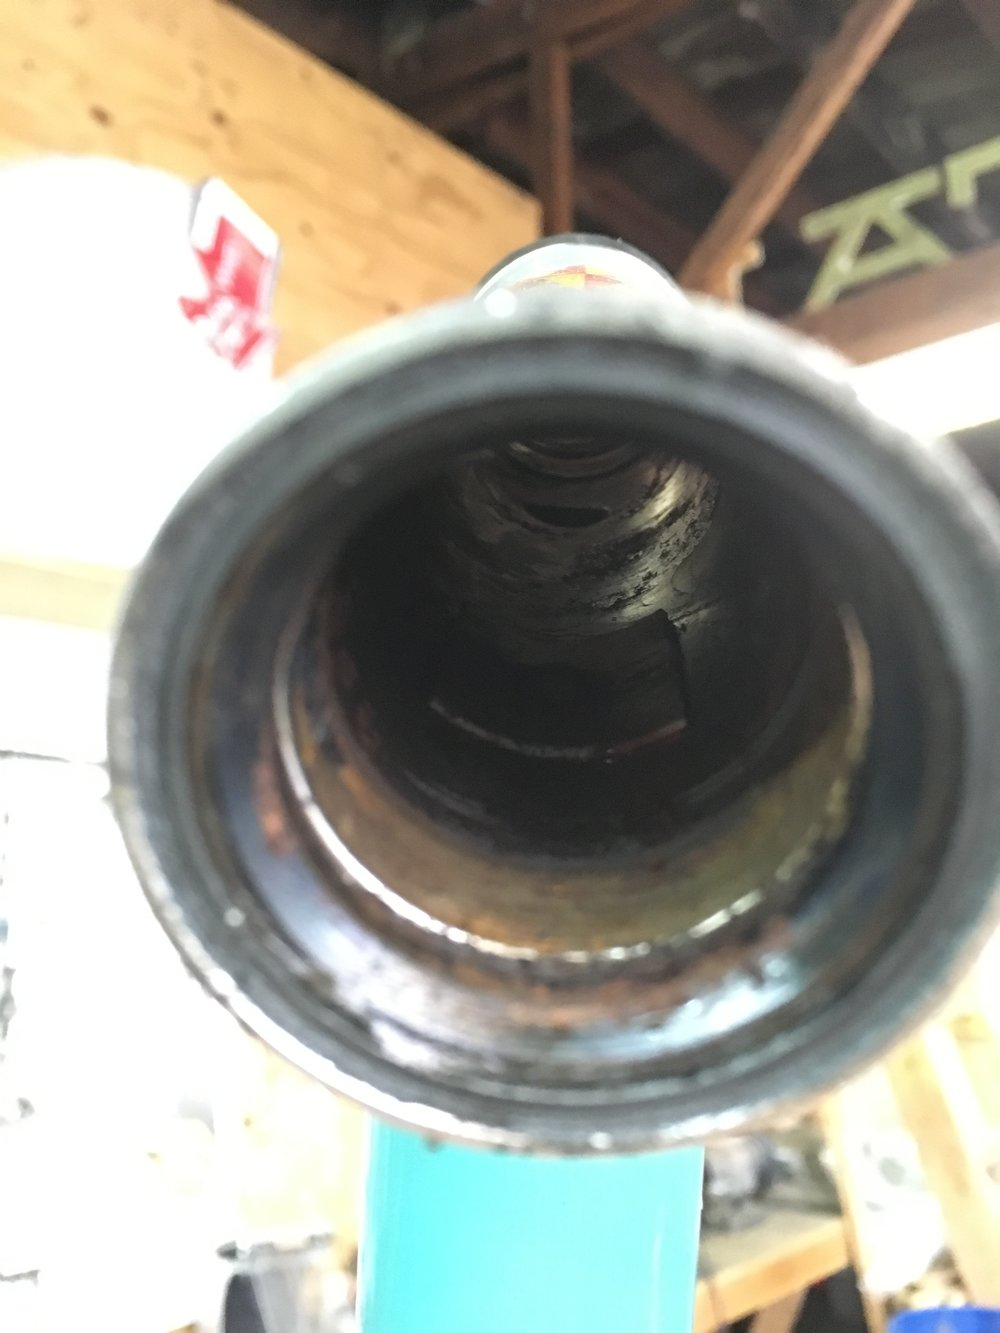 You can kind of see the pointy business [not a carbon brush] inside the head tube here.